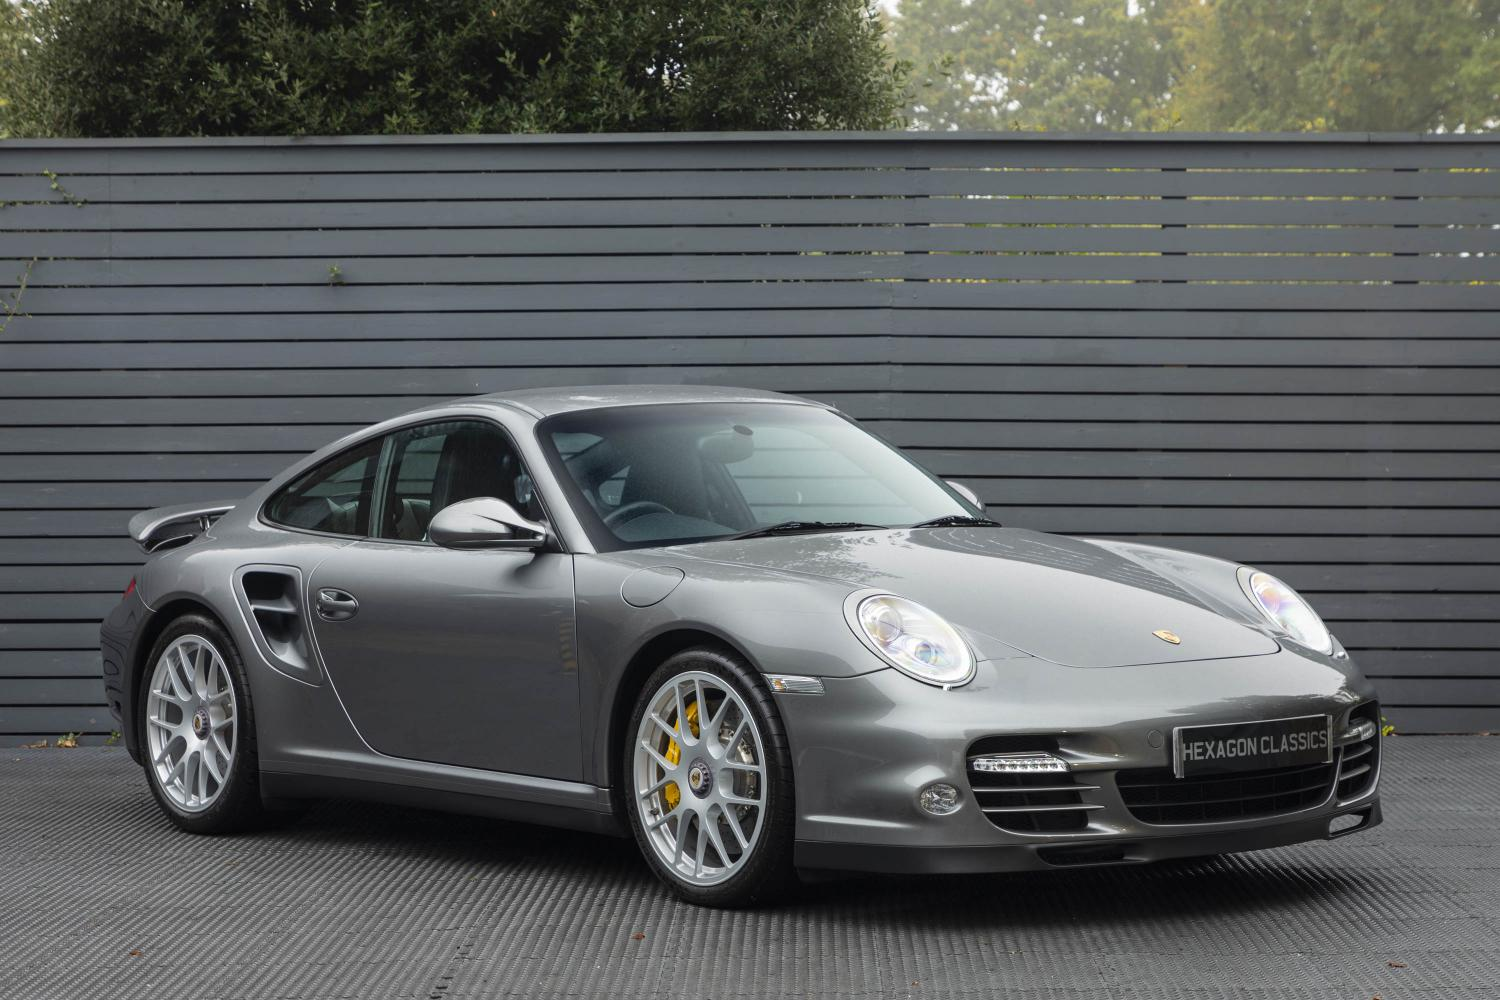 Porsche 911 997 Turbo S Coupe 2011 Hexagon Classic And Modern Cars